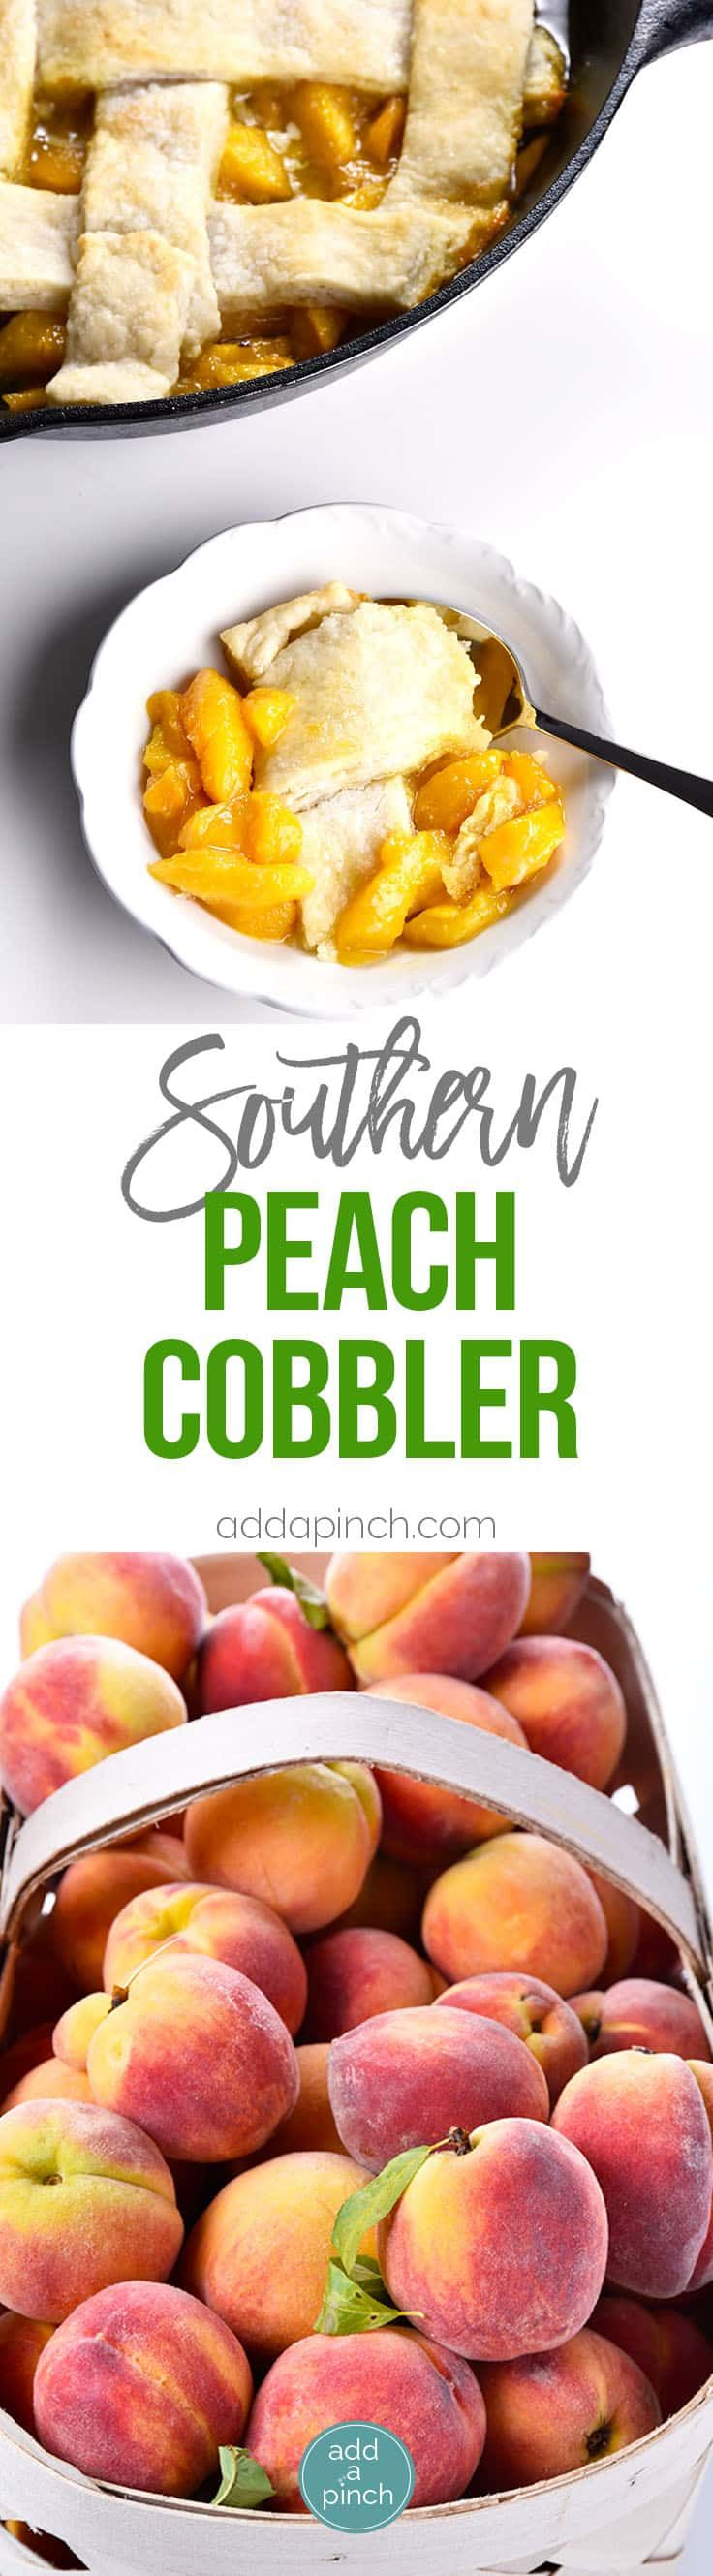 Old Fashioned Southern Peach Cobbler Recipe - Peach Cobbler Recipe – My Grandmother's peach cobbler recipe is a traditional Southern peach cobbler! This heirloom recipe makes the best peach cobbler that has always been a staple in my family for generations. // addapinch.com